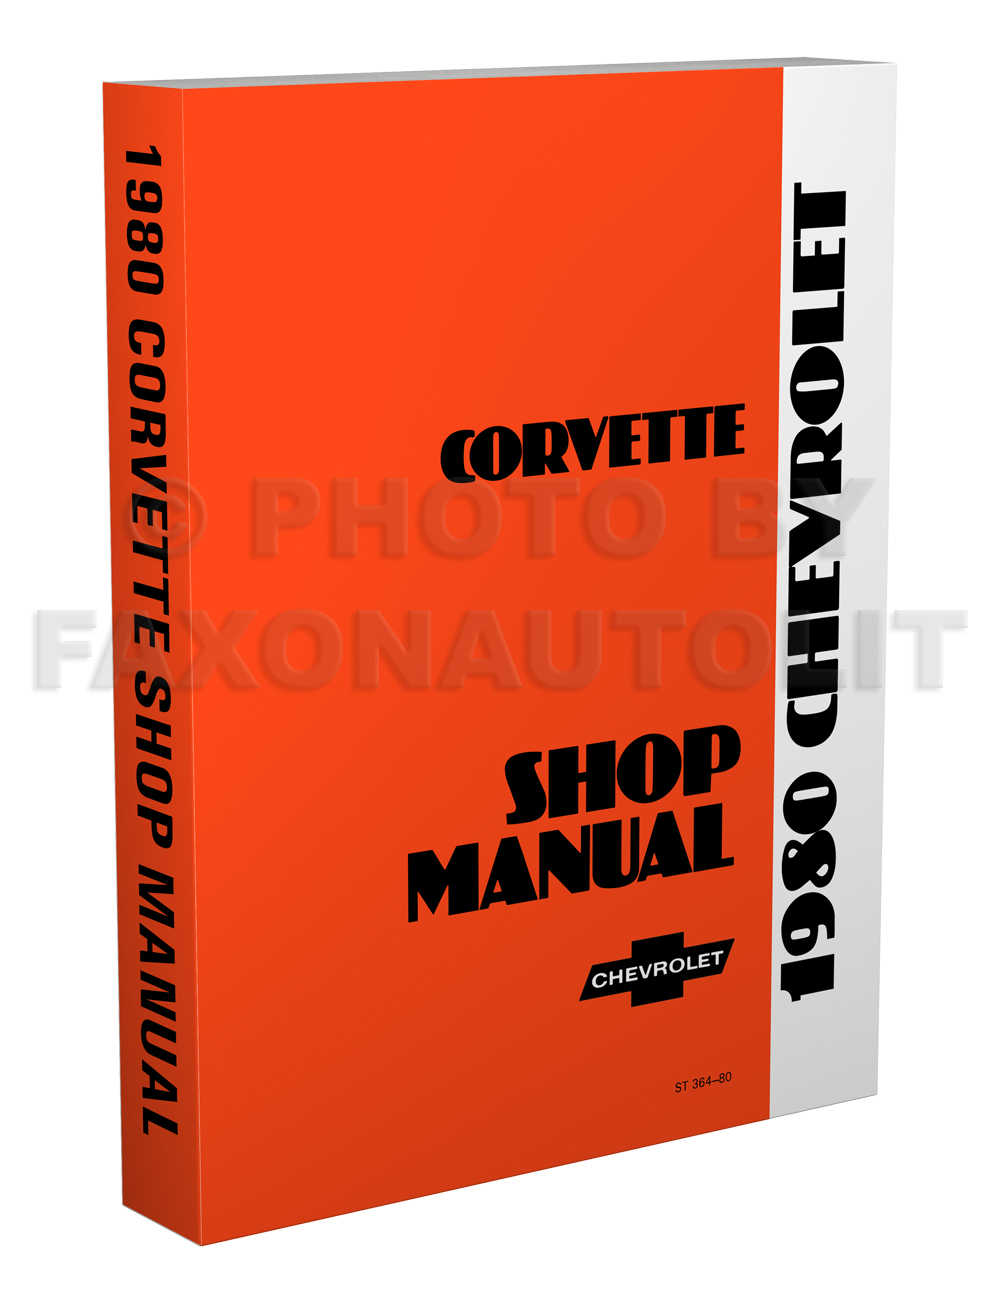 1980 Corvette Shop Manual Original